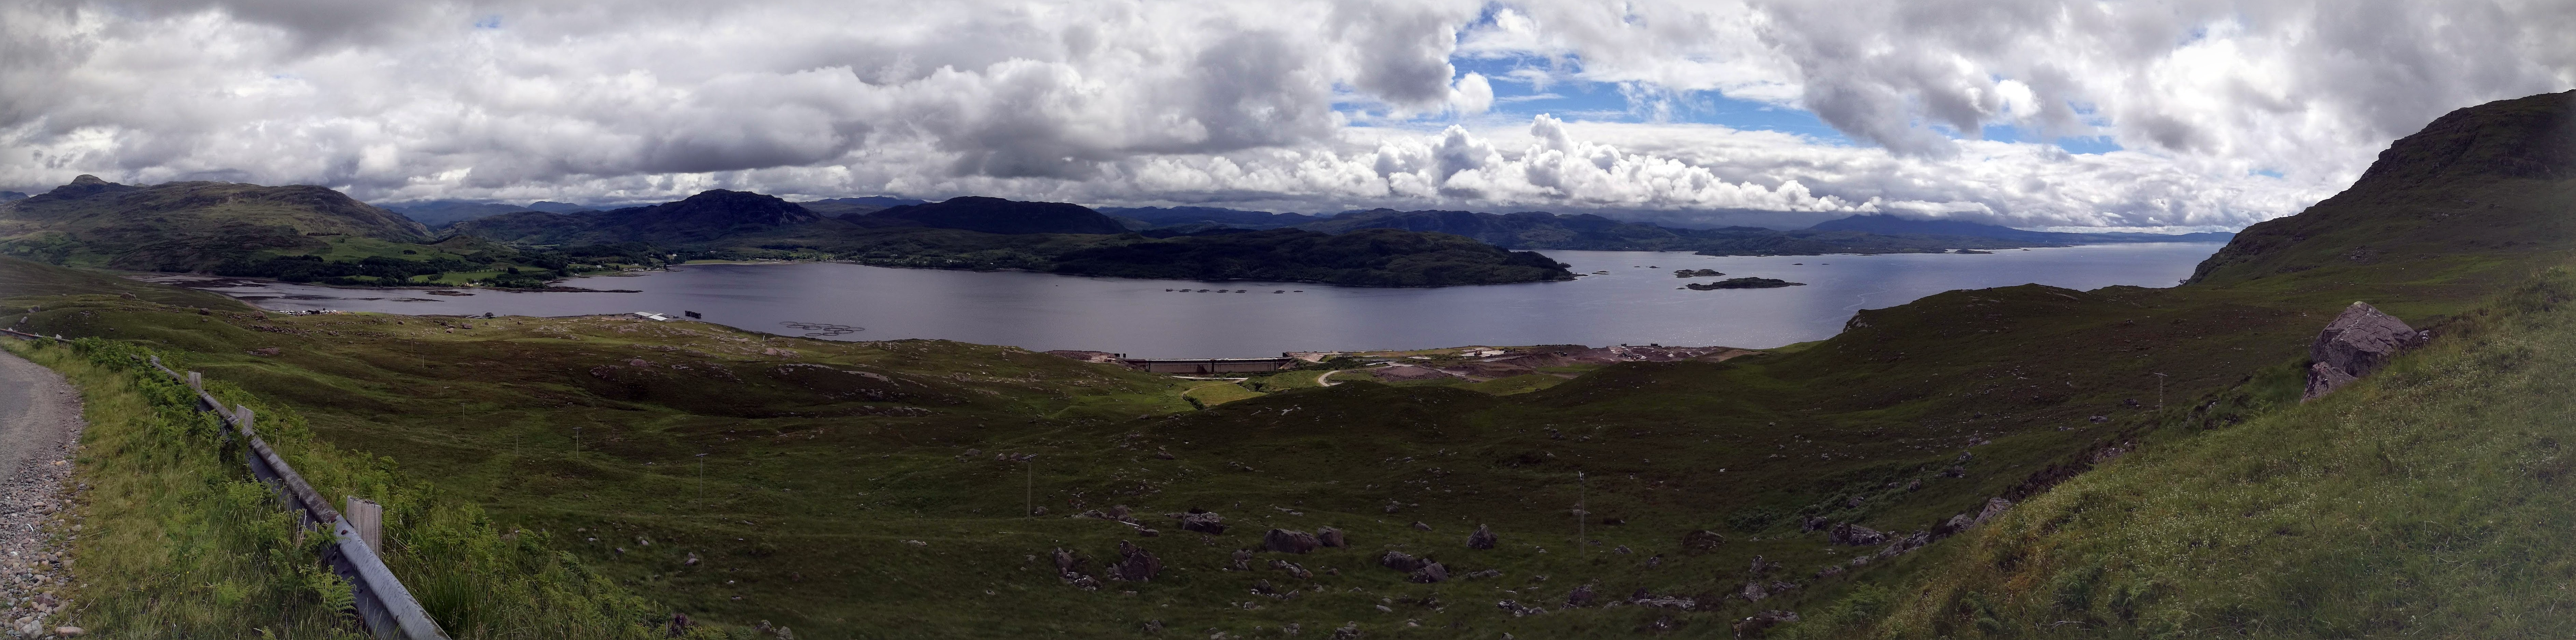 One of the views en route to Applecross